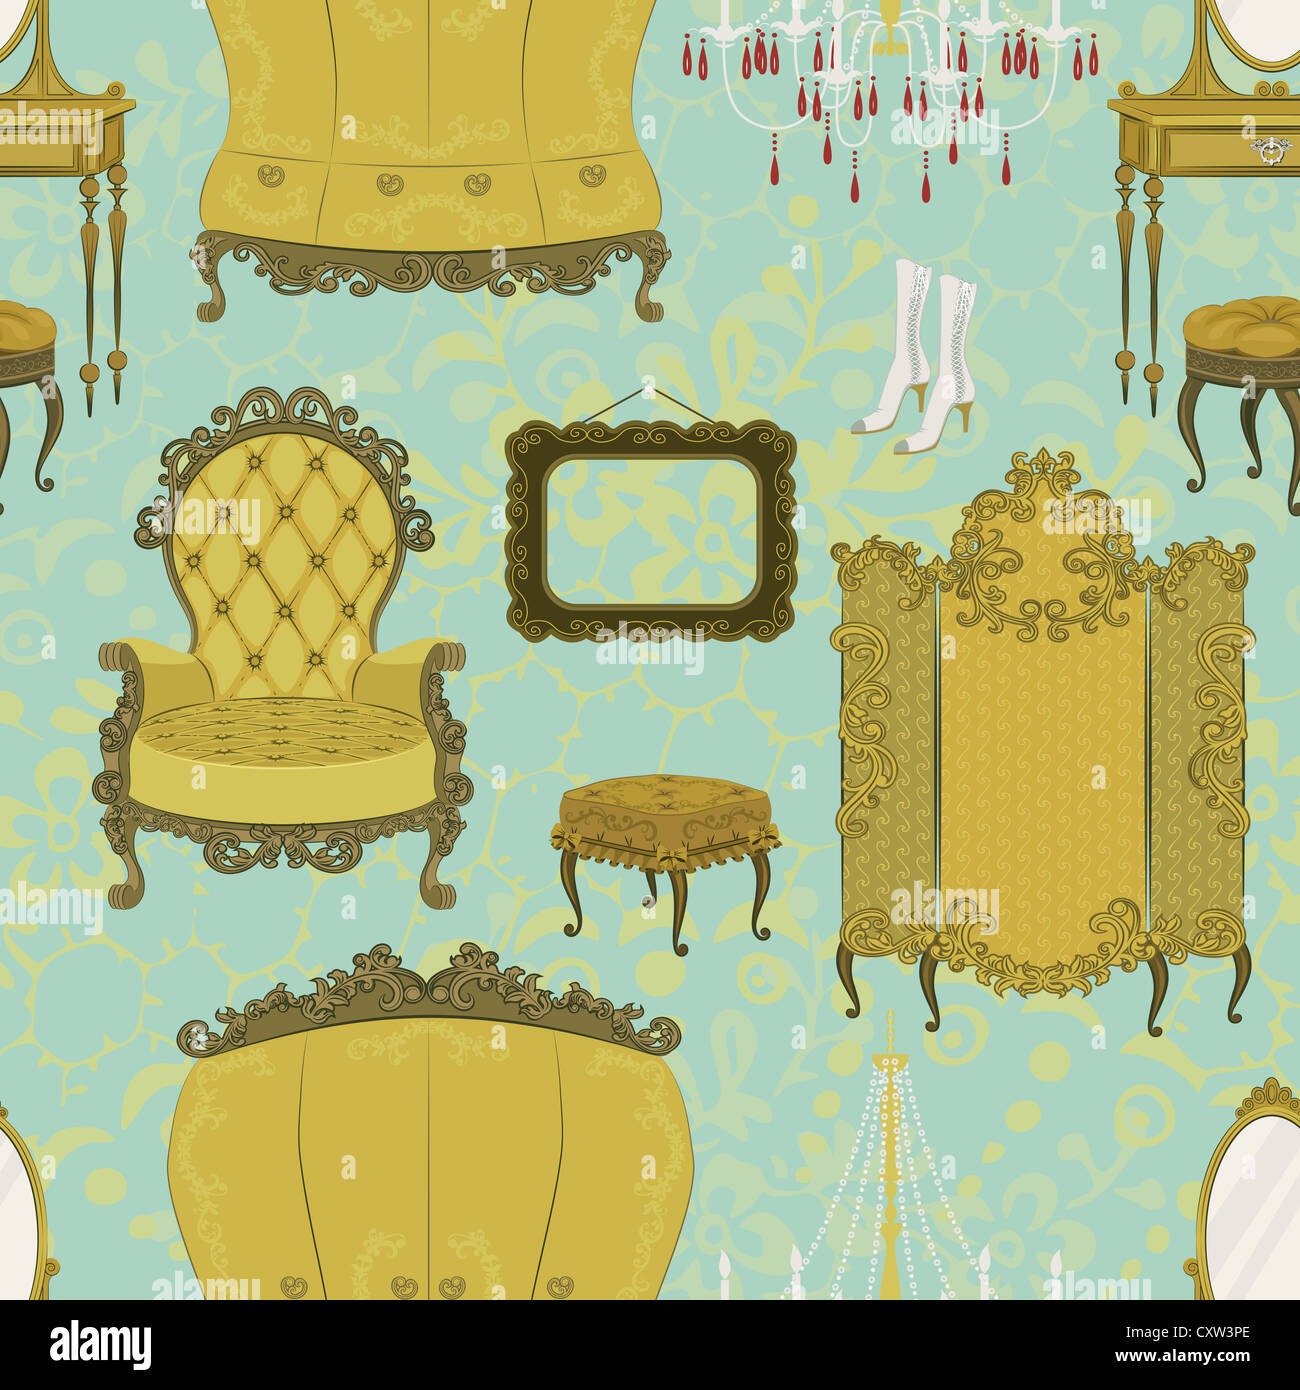 Seamless pattern with antique furniture Stock Photo